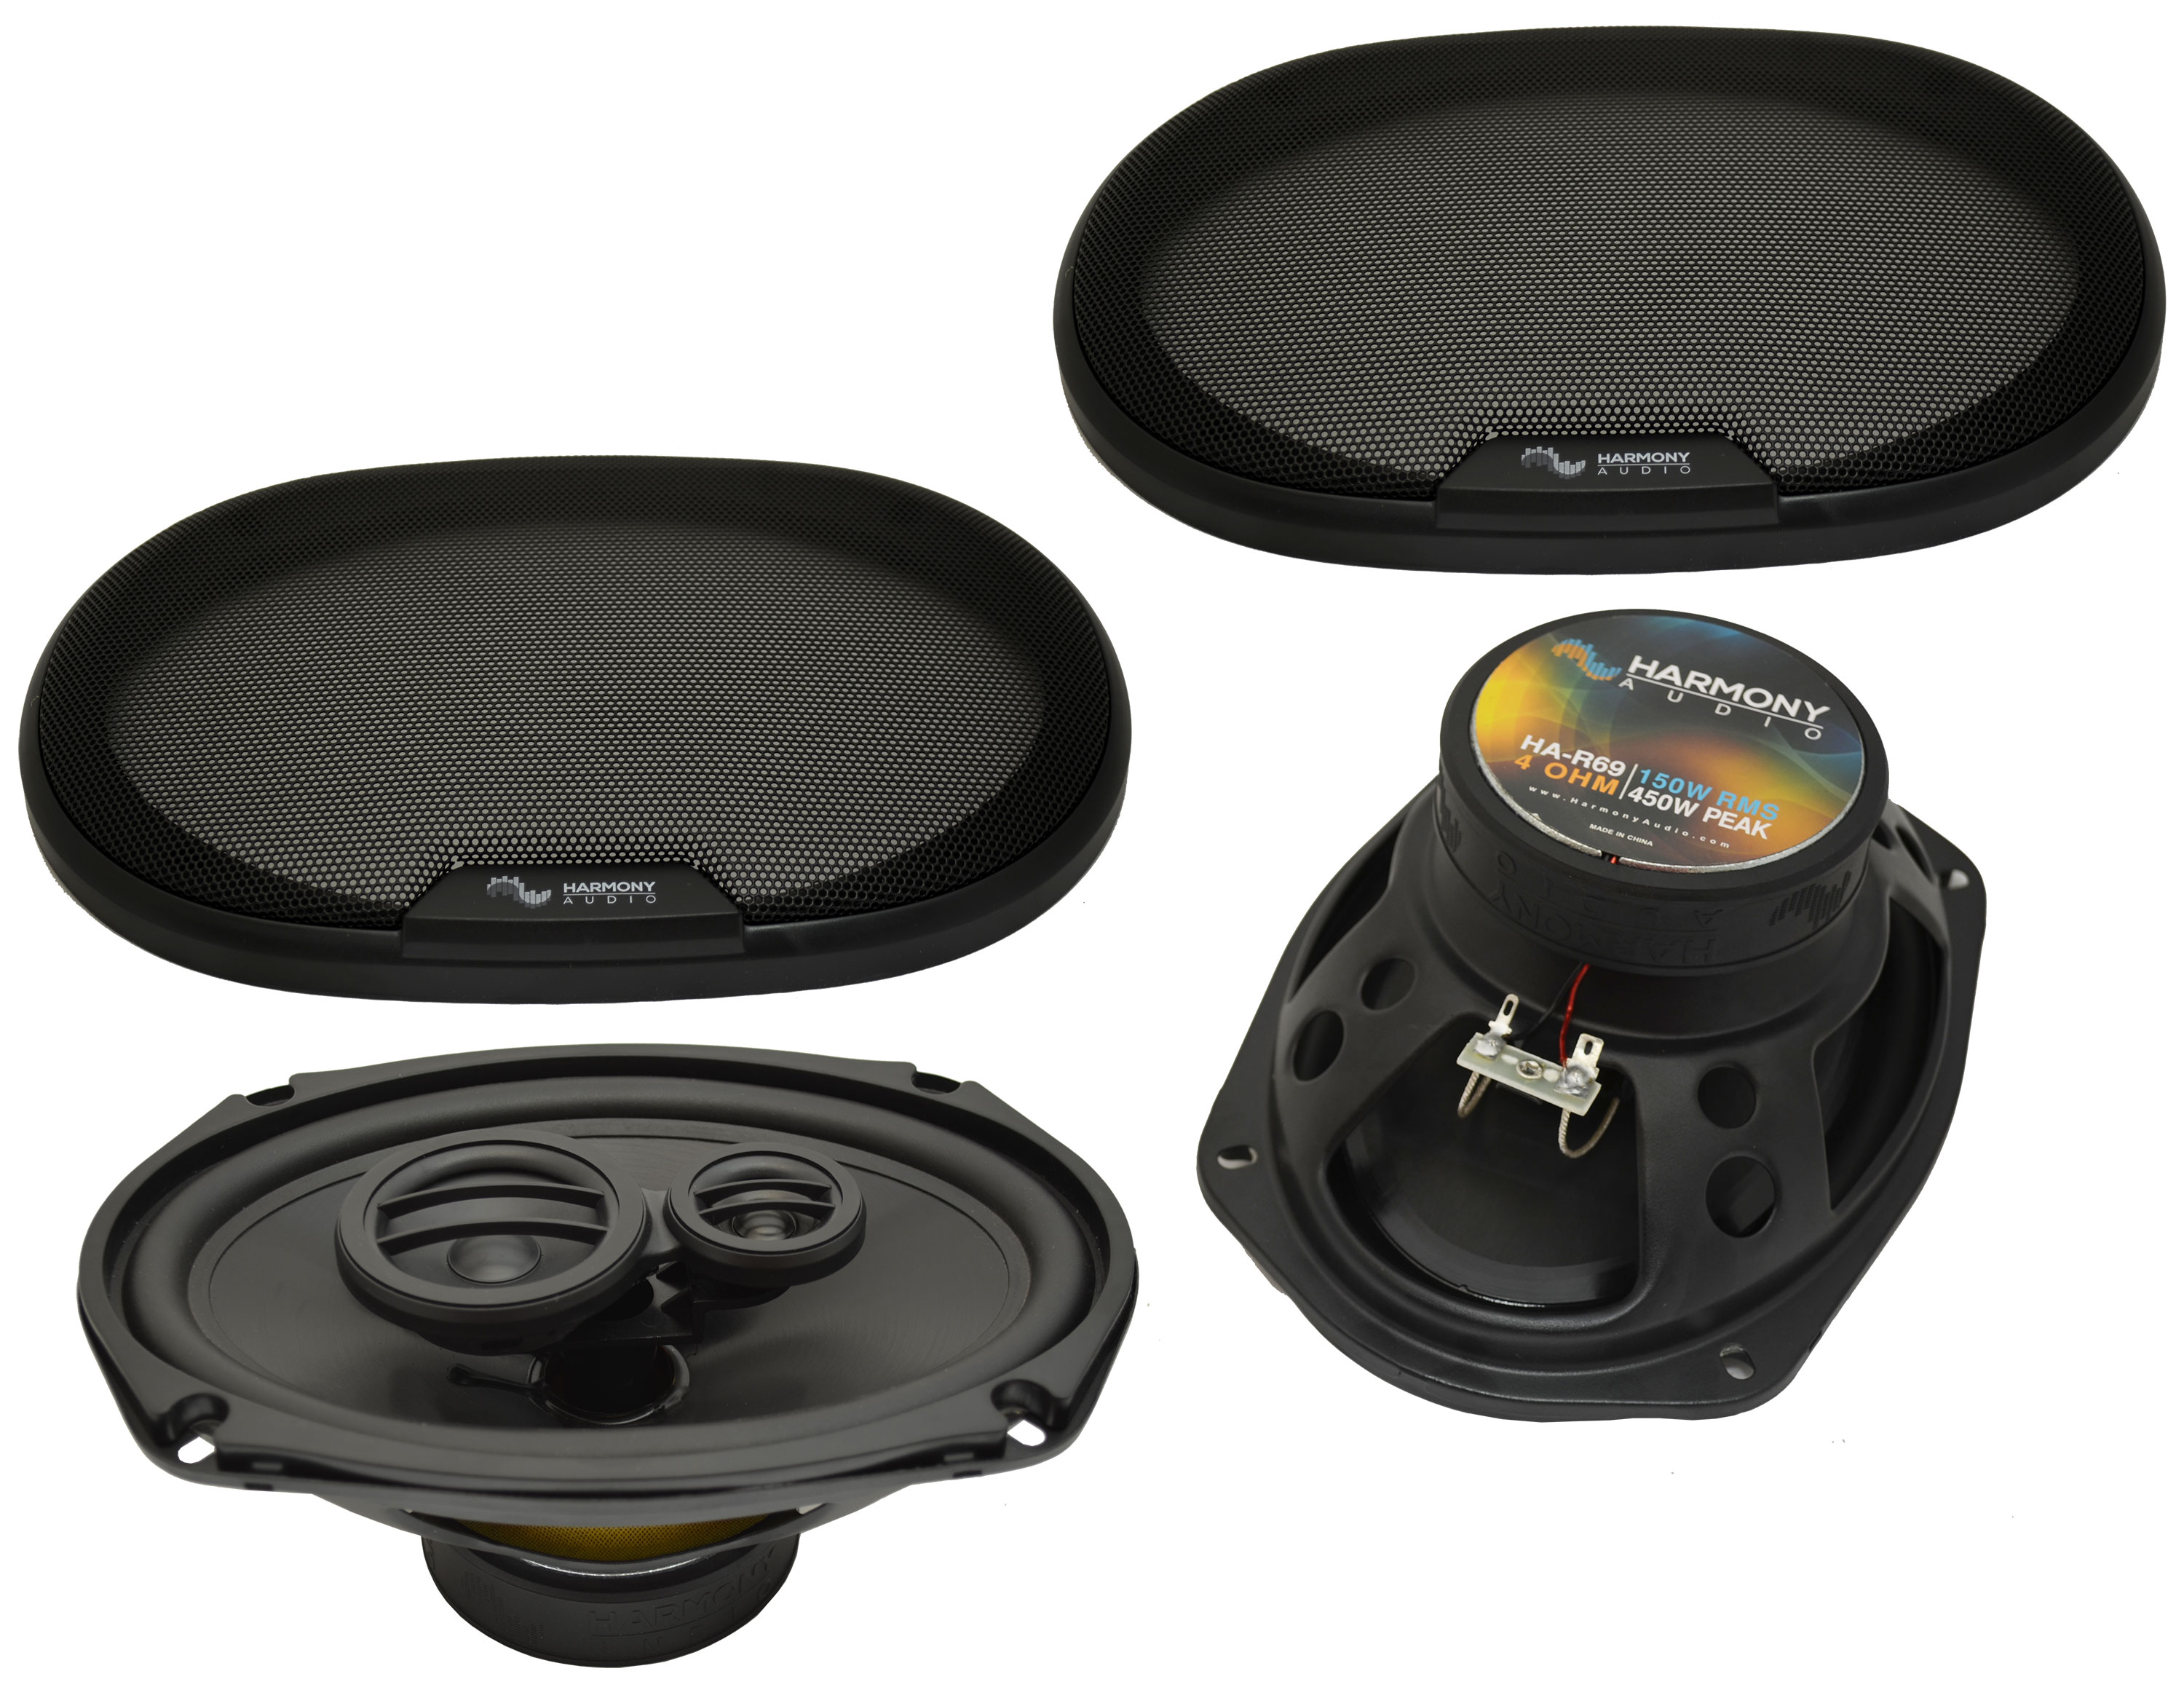 Fits Dodge Magnum 2008 Rear Deck Replacement Speaker Harmony HA-R69 Speakers New